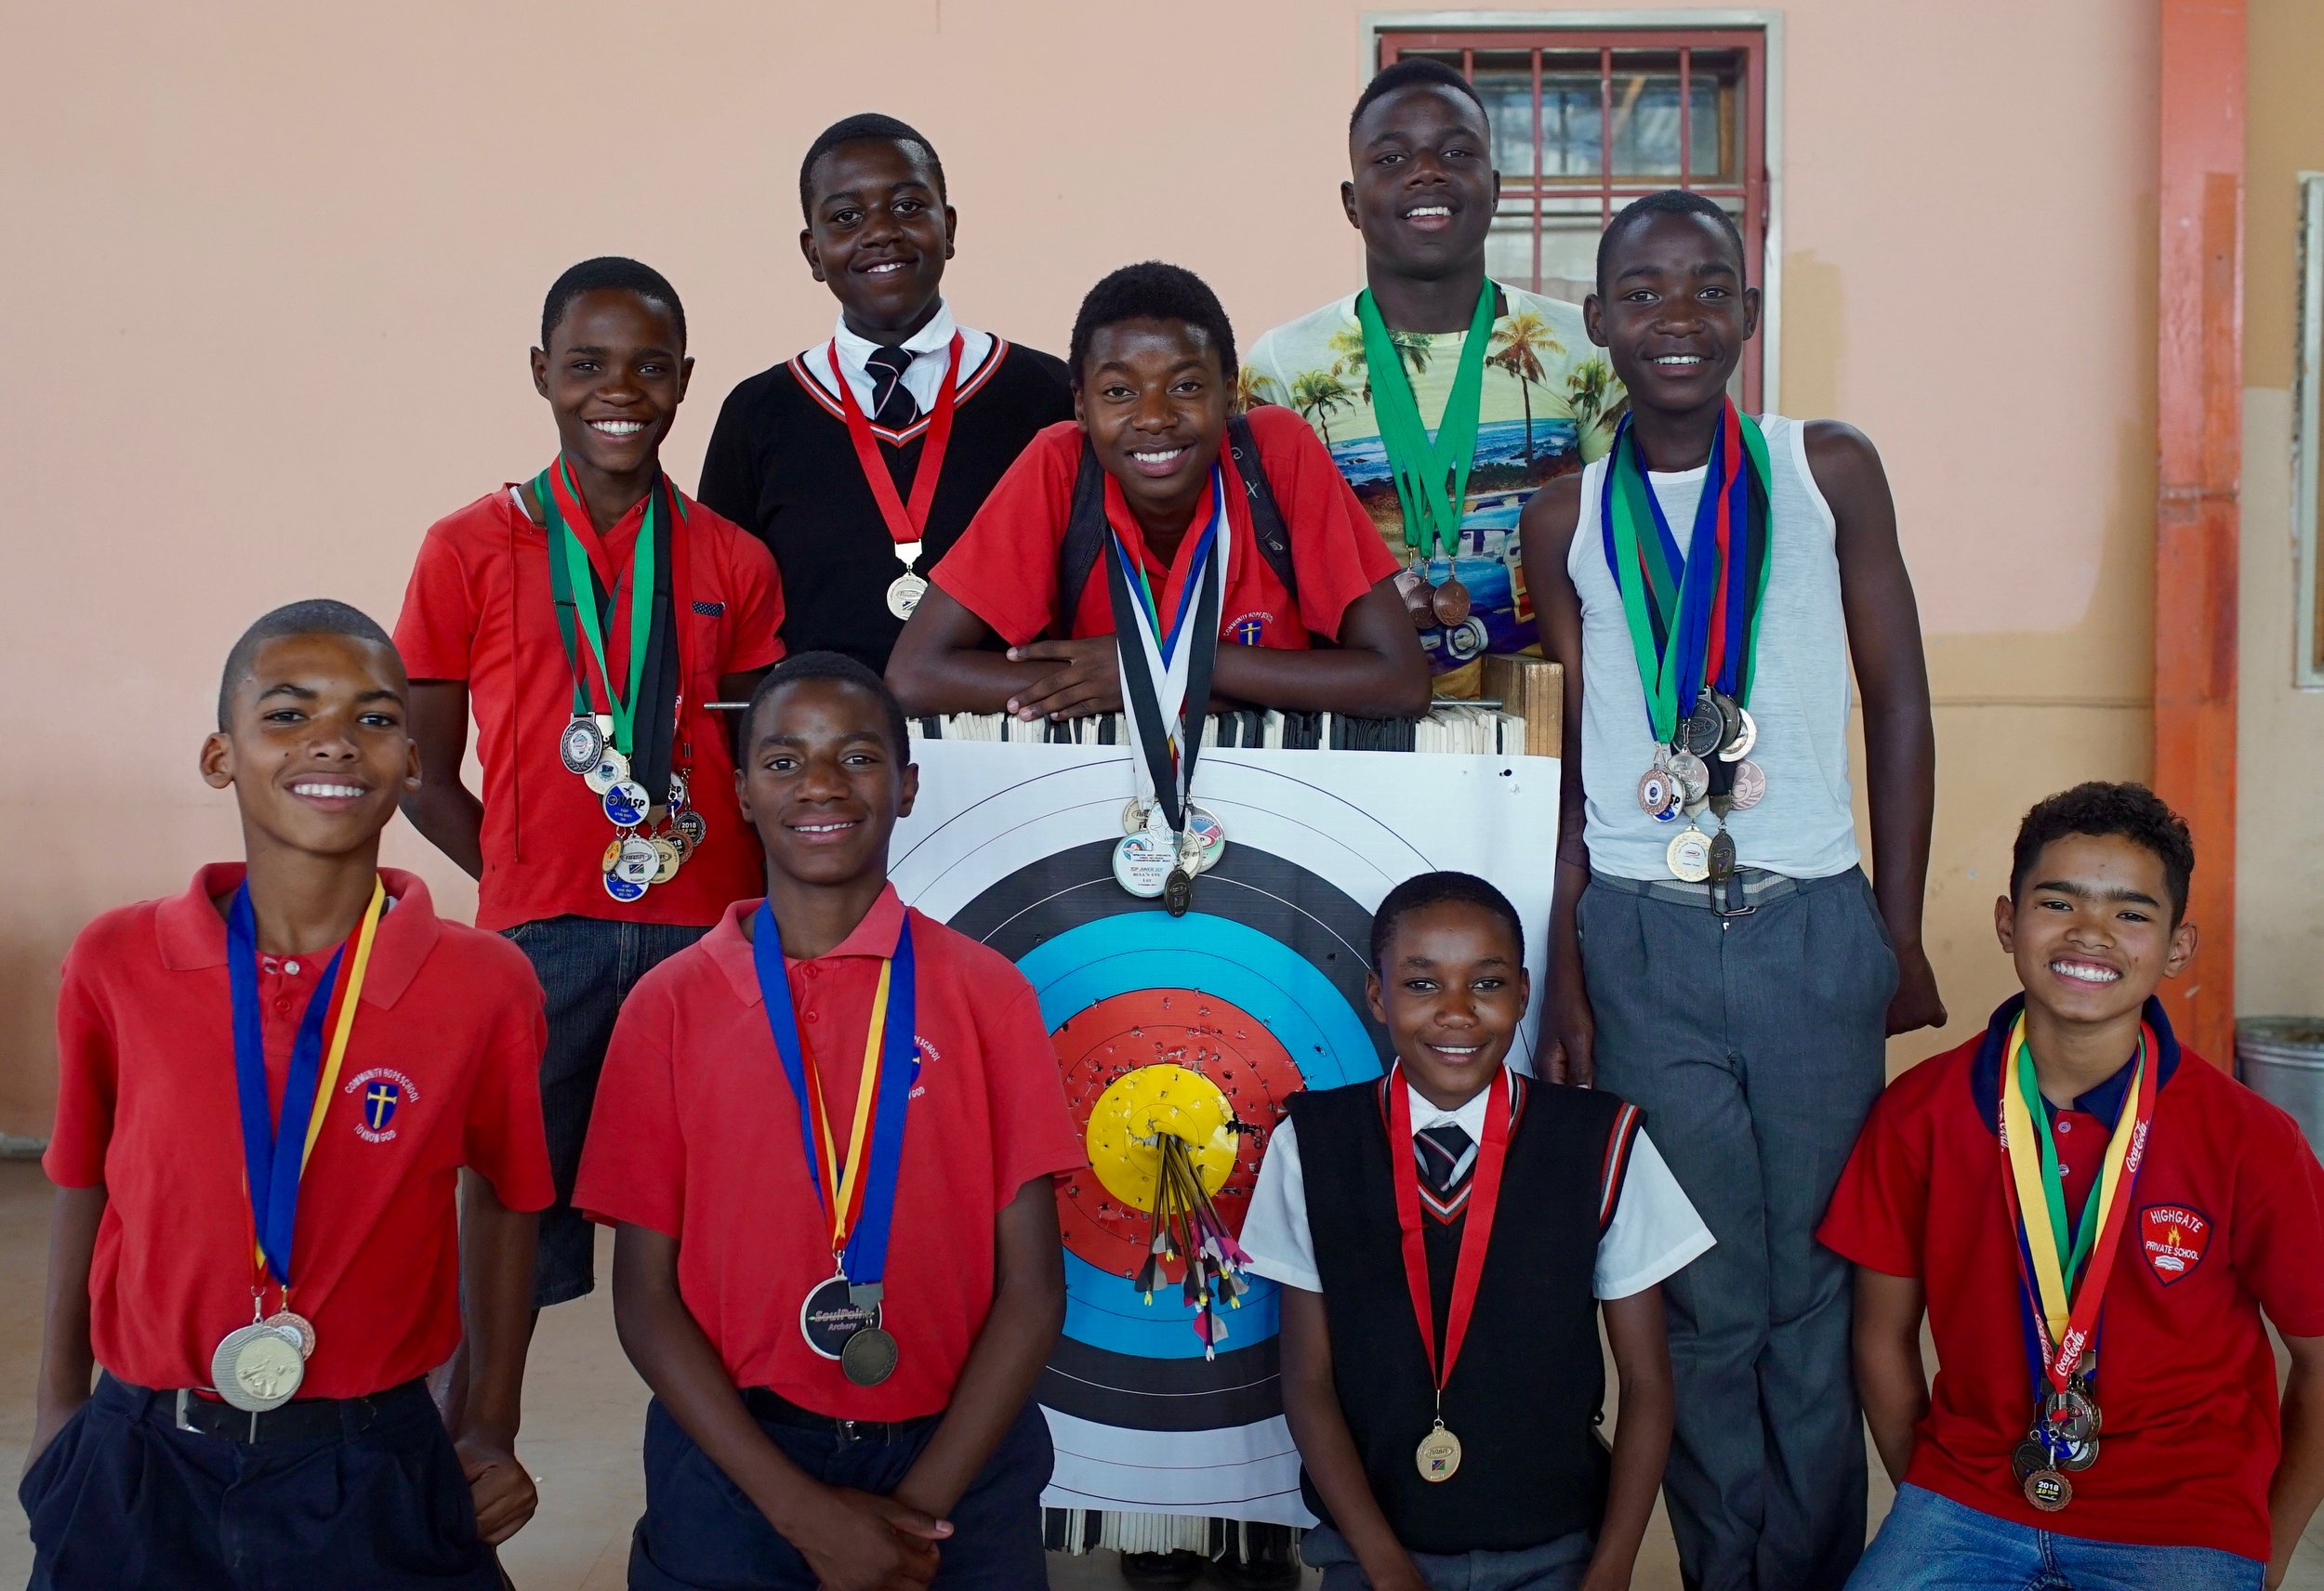 HITTING THE MARK! - Our Archery Programm has been running for 3 years and each year archers from CHS qualify to represent Namibia at the All Stars Tournament hosted by one of the four NASP countries in Africa (Botswana, Namibia, South Africa & Zimbabwe). This year (2019), we had six (6) boys qualify for the tournament hosted by South Africa, three (3) in the National team and the other three (3) in the development team. The boys did extremely well. Delron Gaoseb got a Gold medal in the 3D category and Bronze overall. Namibia will host the 2020 All Stars Tournament in the coastal town of Swakopmund.